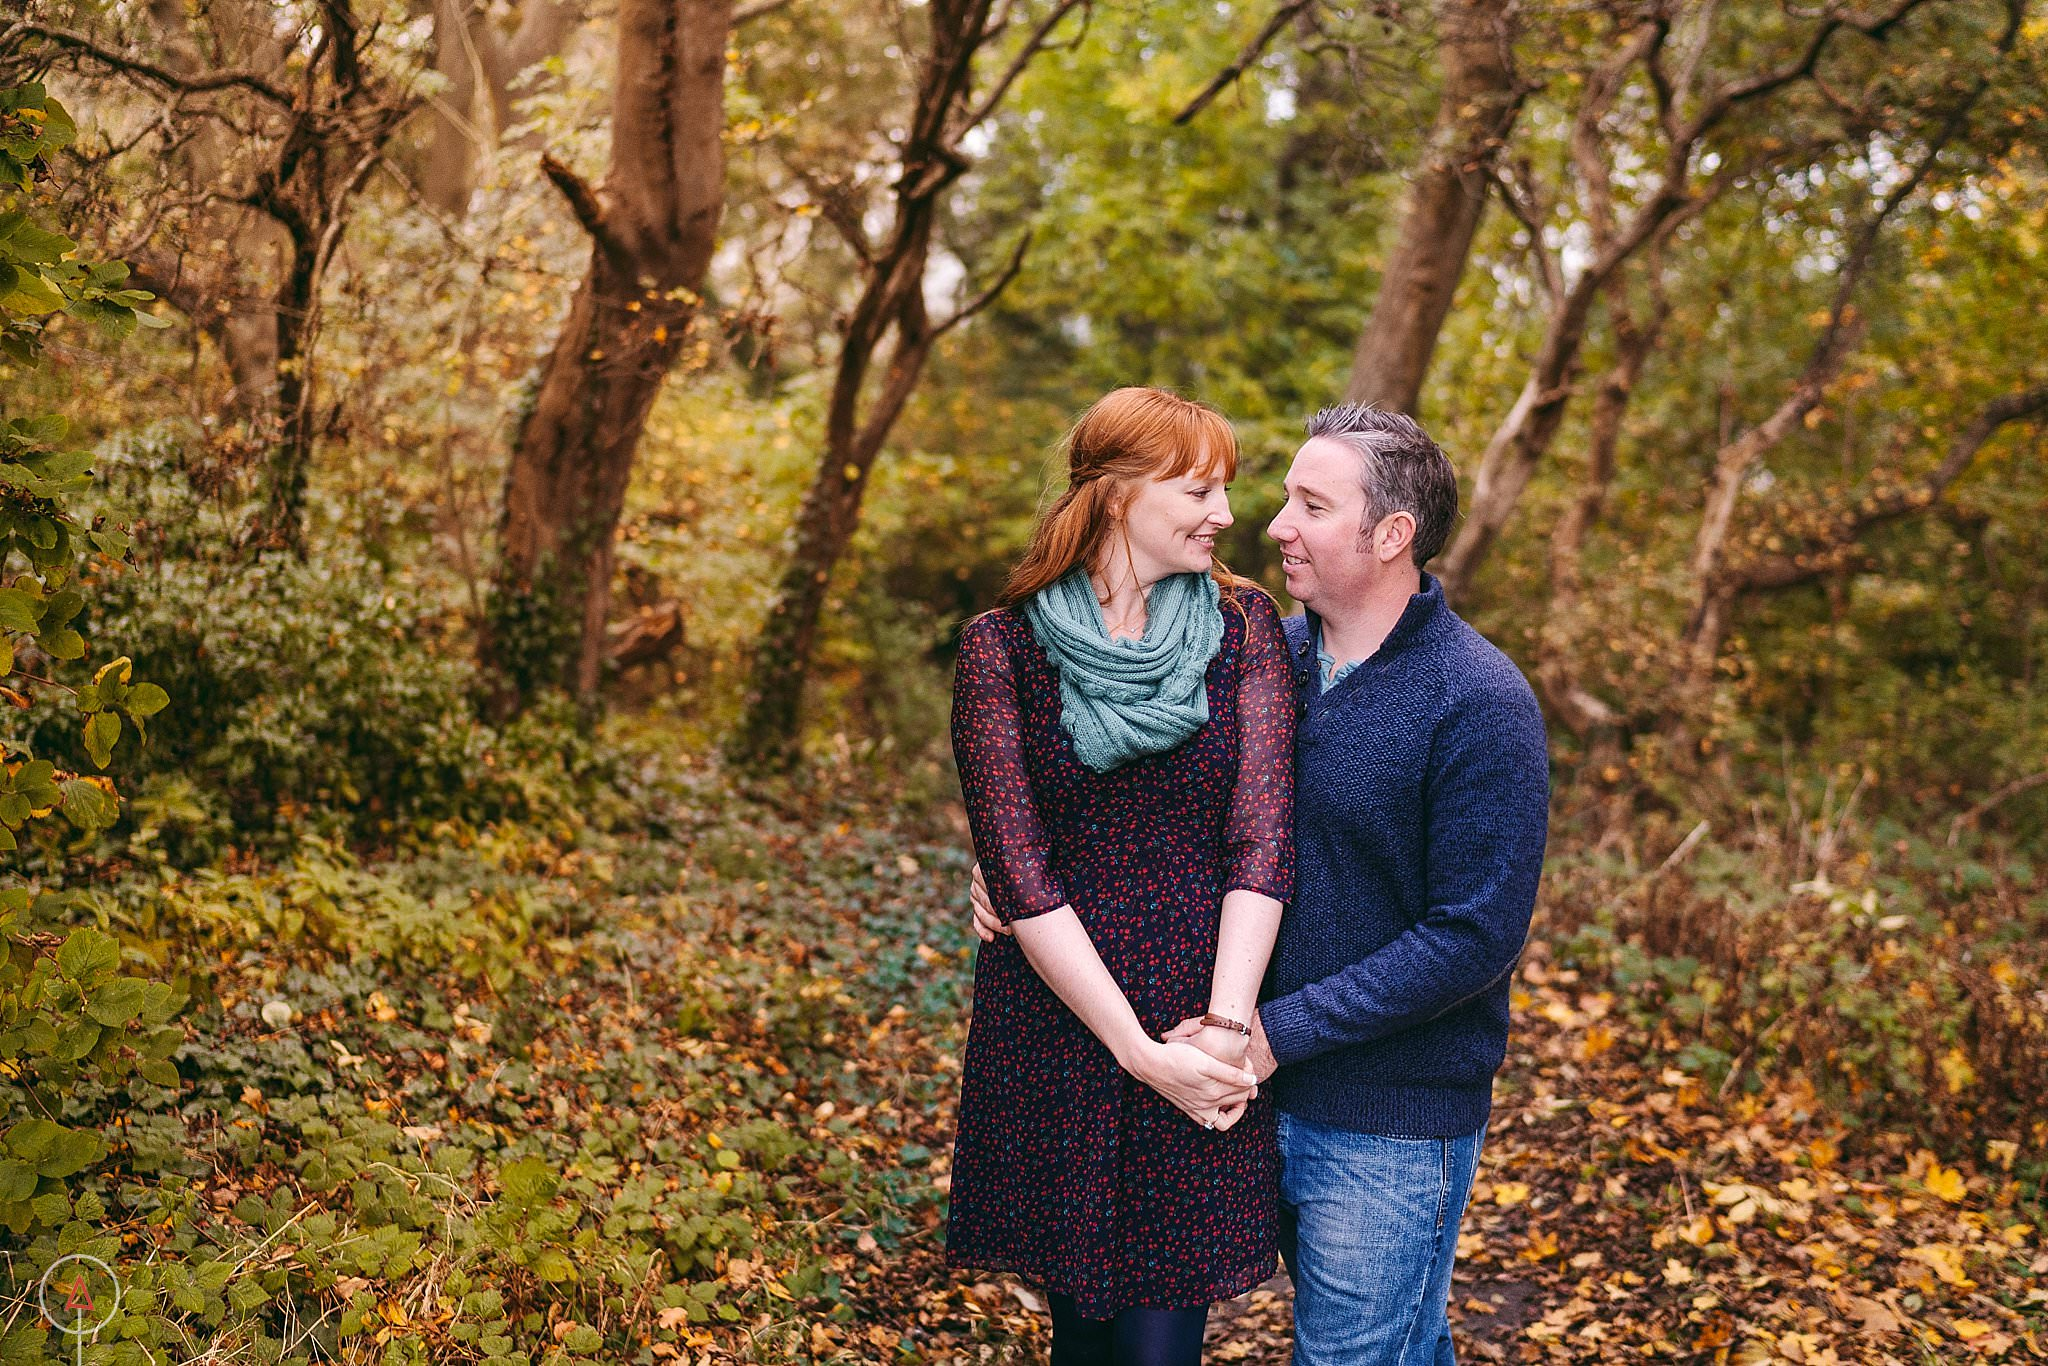 South-Wales-Pre-Wedding-Photography-Aga-Tomaszek-00027